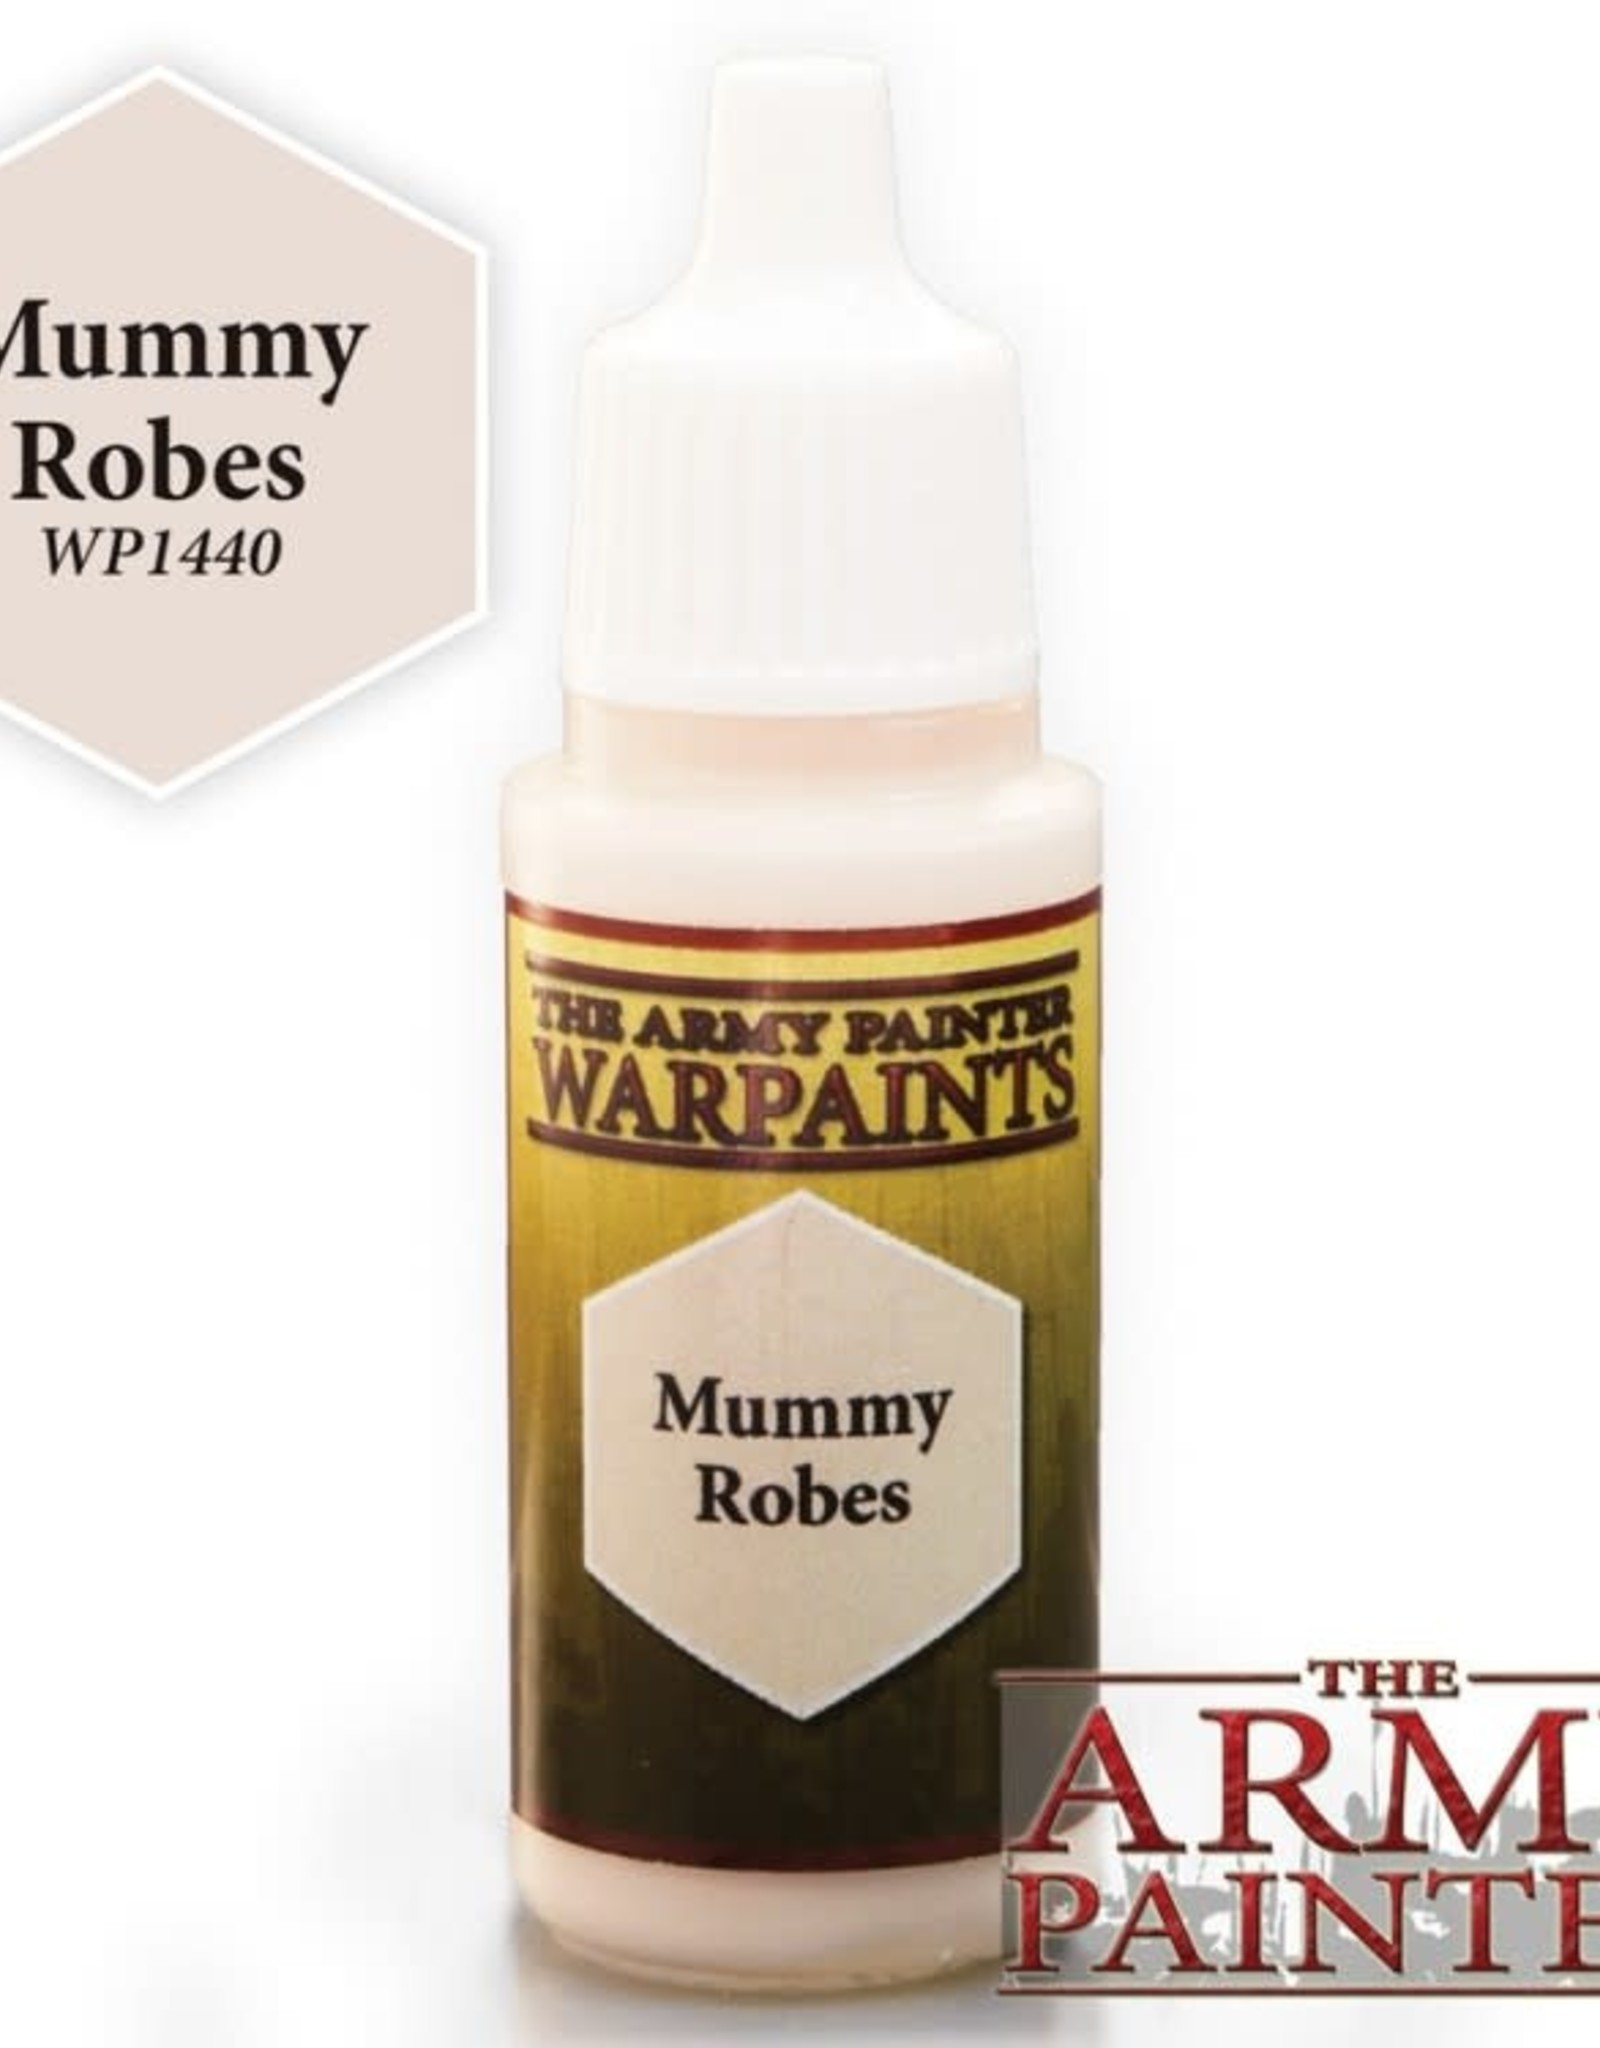 The Army Painter Warpaints - Mummy Robes